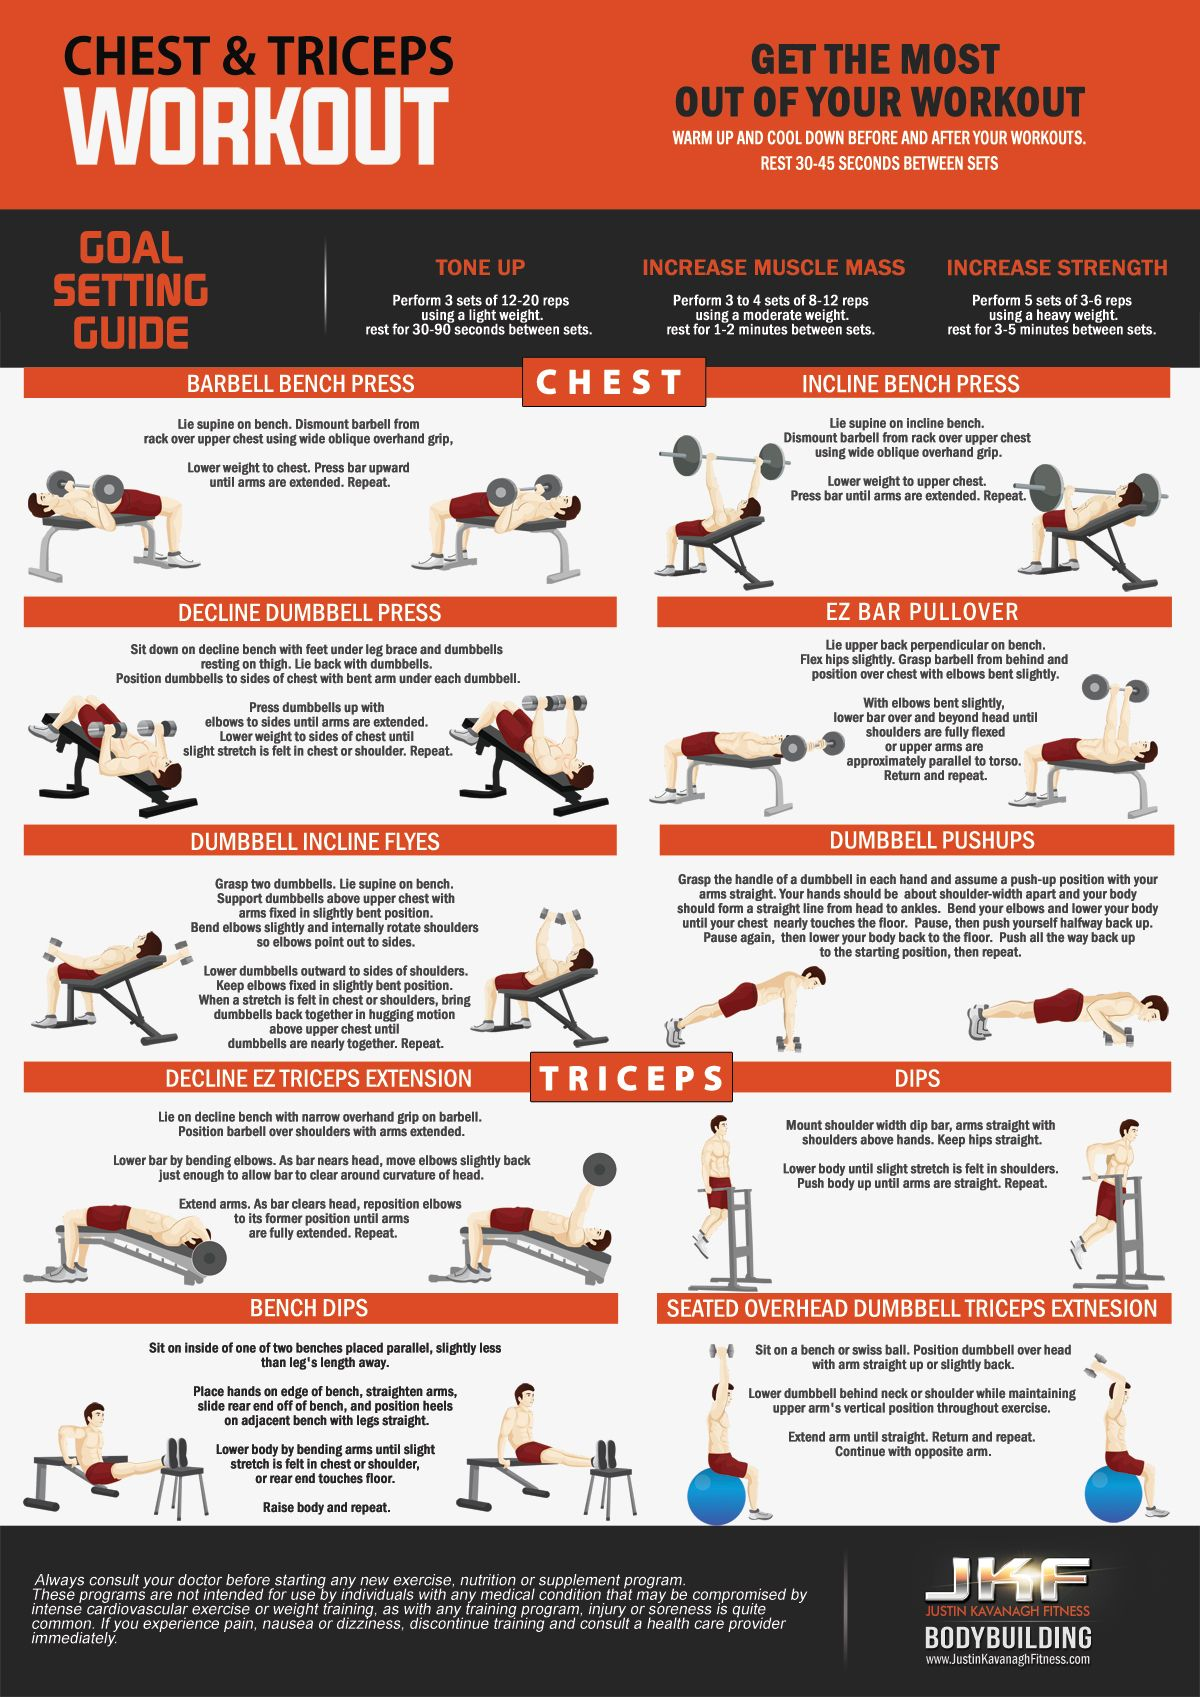 Pin by Jacob Hubert on Exercise | Workout programs, 4 day ...